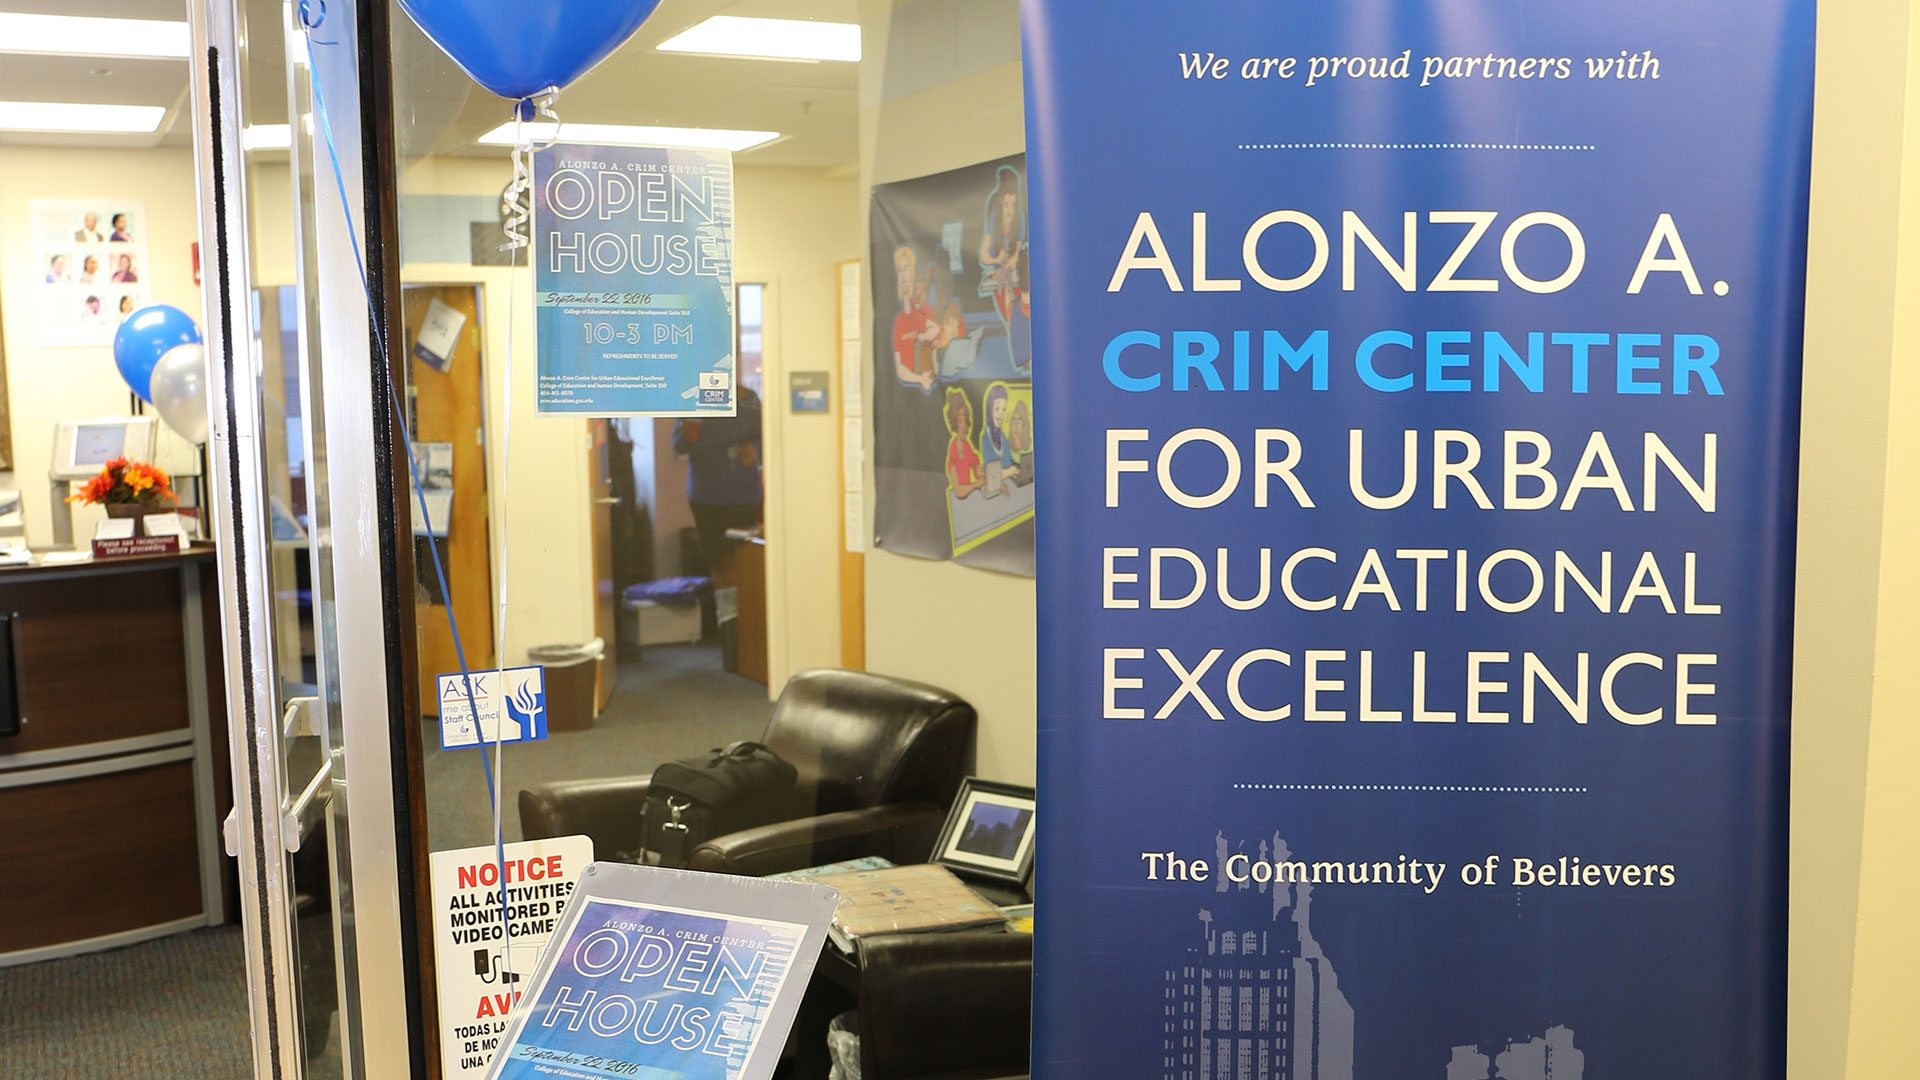 Banner reads Alonzo A. Crim Center for Urban Educational Excellence - The Community of Believers